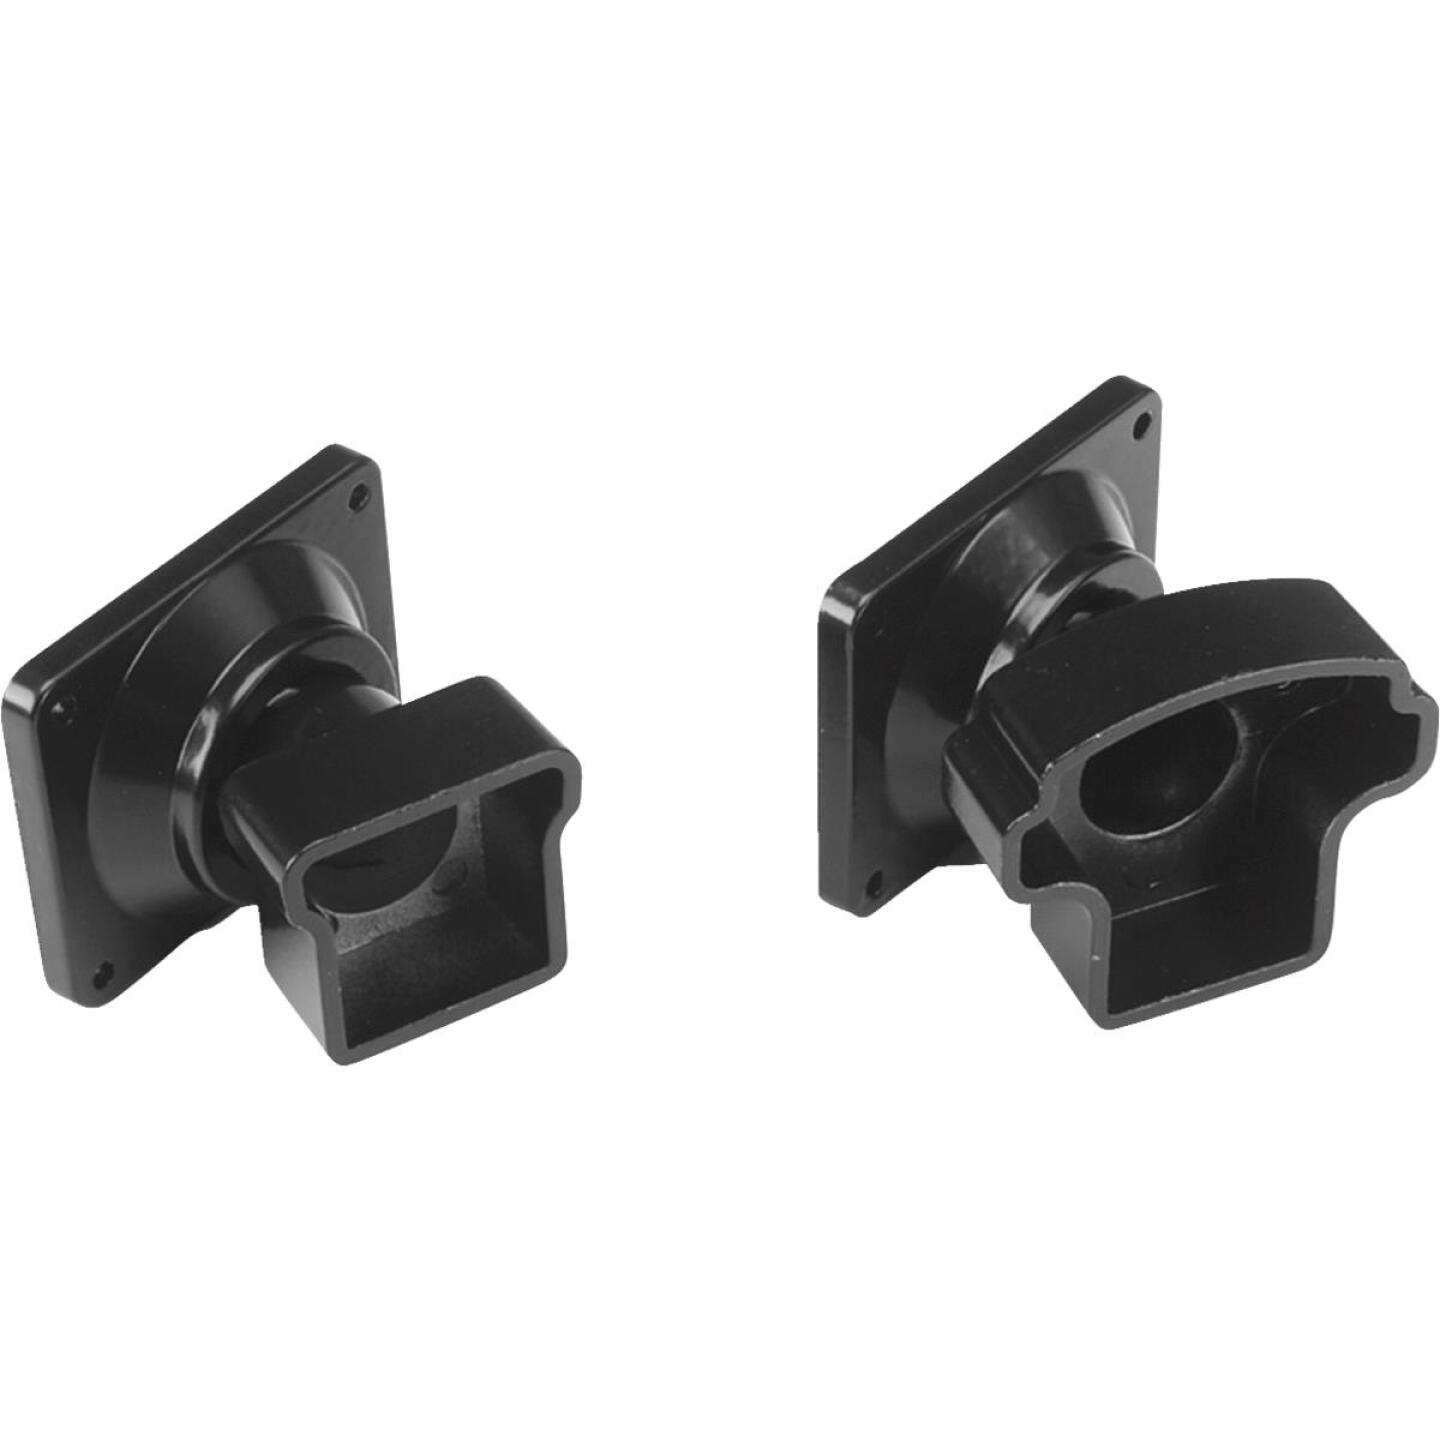 Gilpin Summit Black Powder Coated Aluminum Railing Swivel Fitting (2-Pack) Image 1